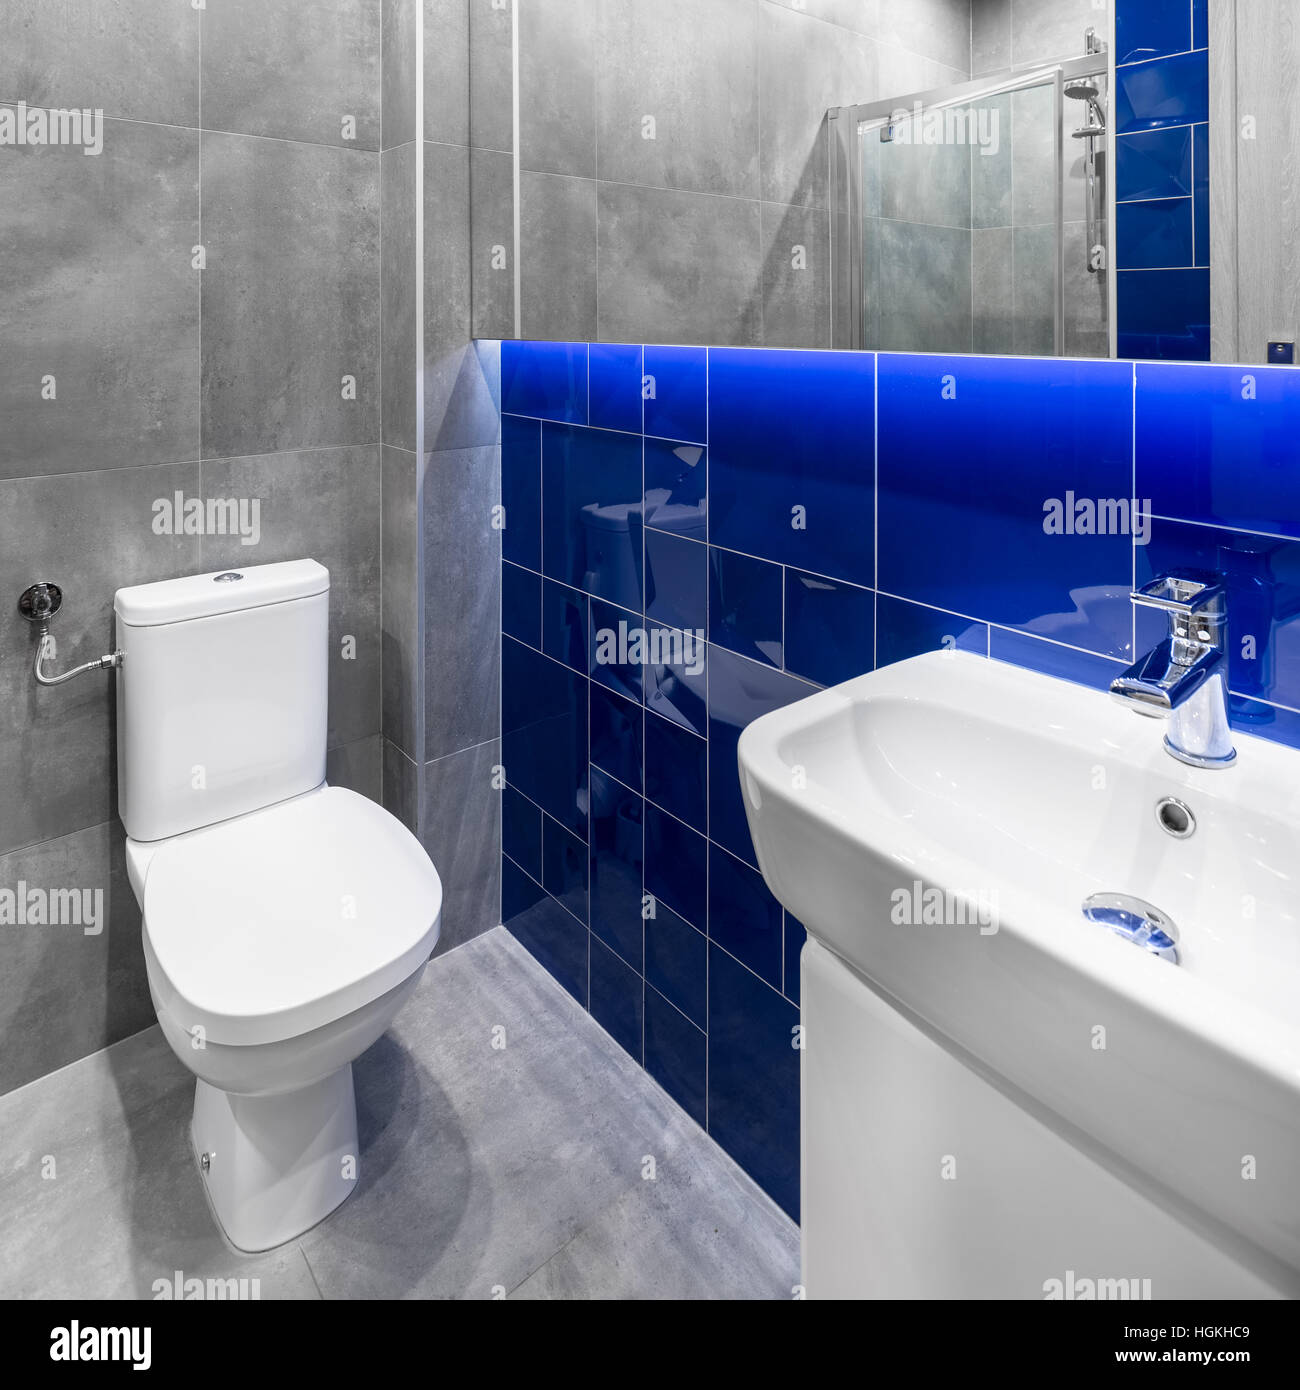 Small bathroom in grey and blue with toilet, sink and basin cabinet ...